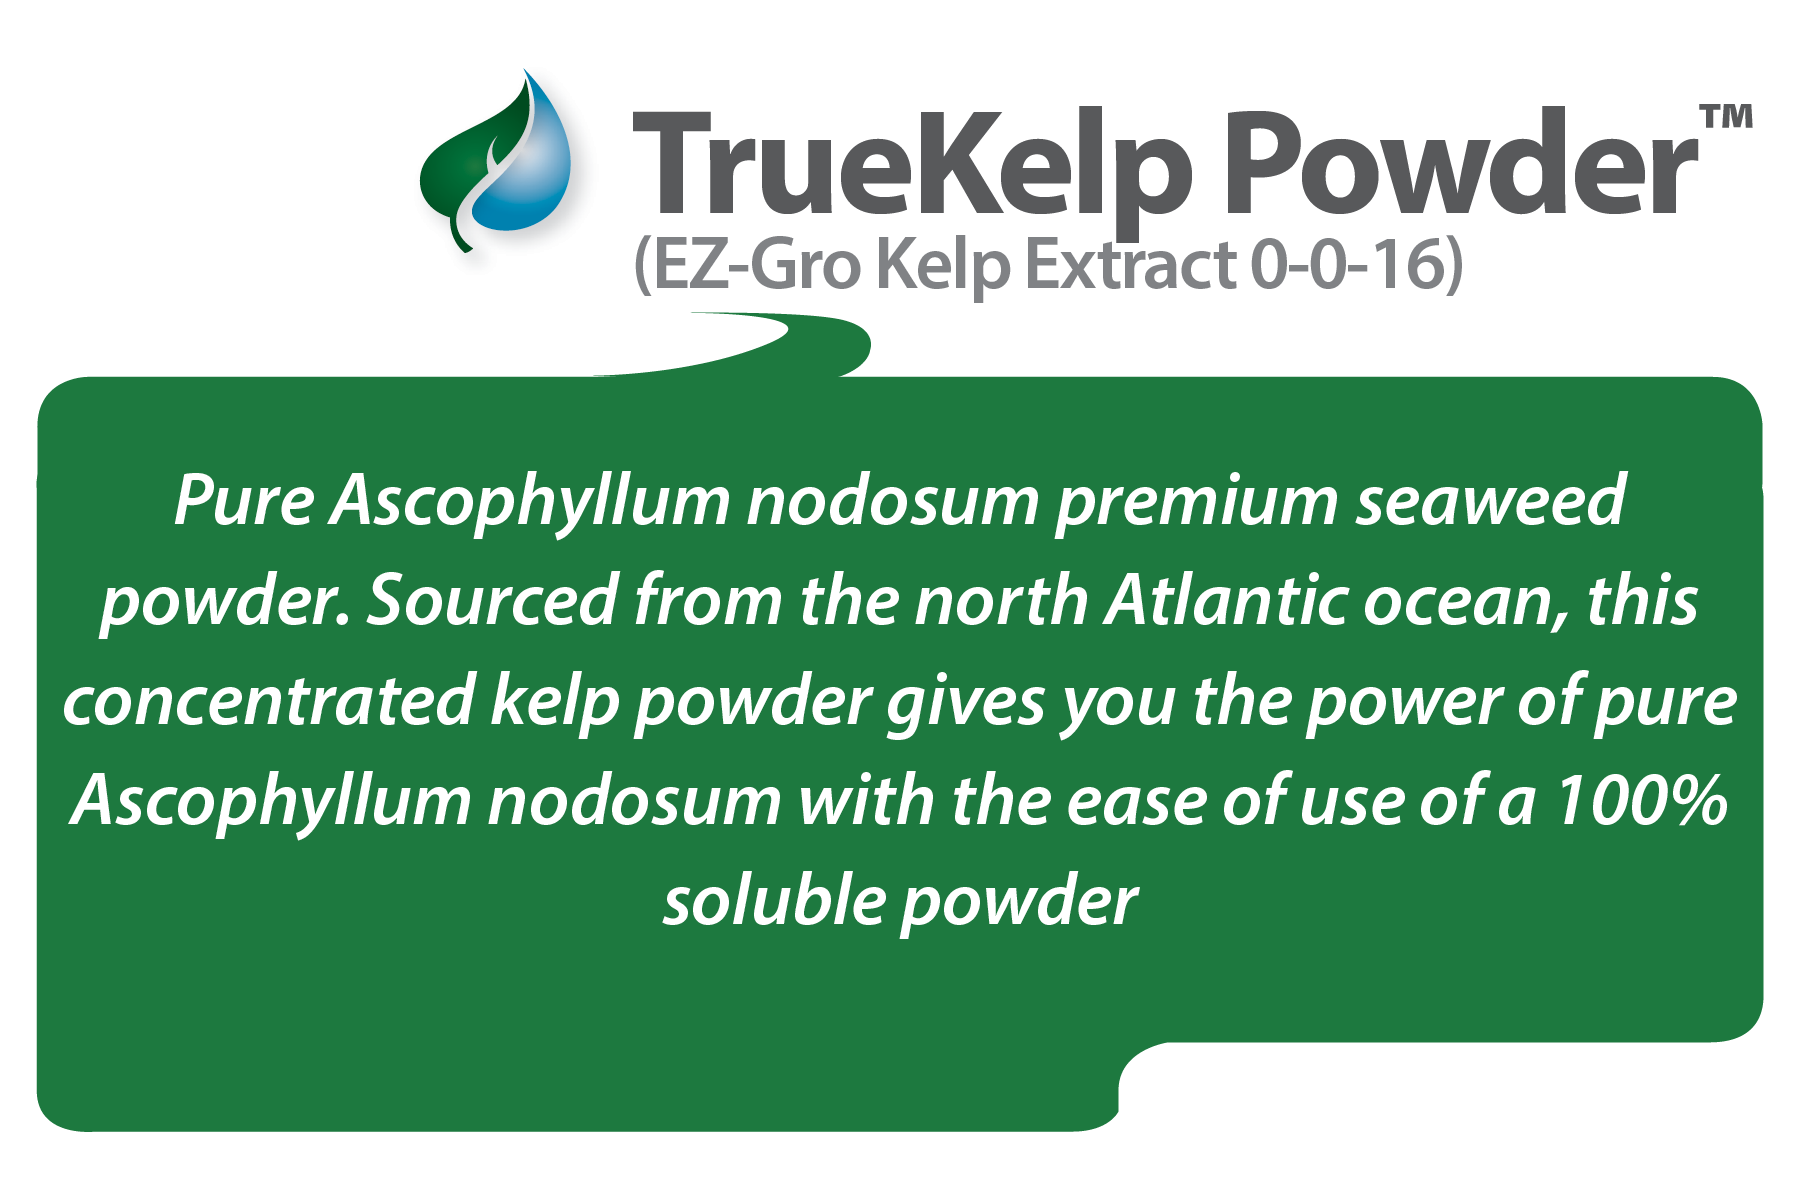 What is TrueKelp™ Powder 0-0-16